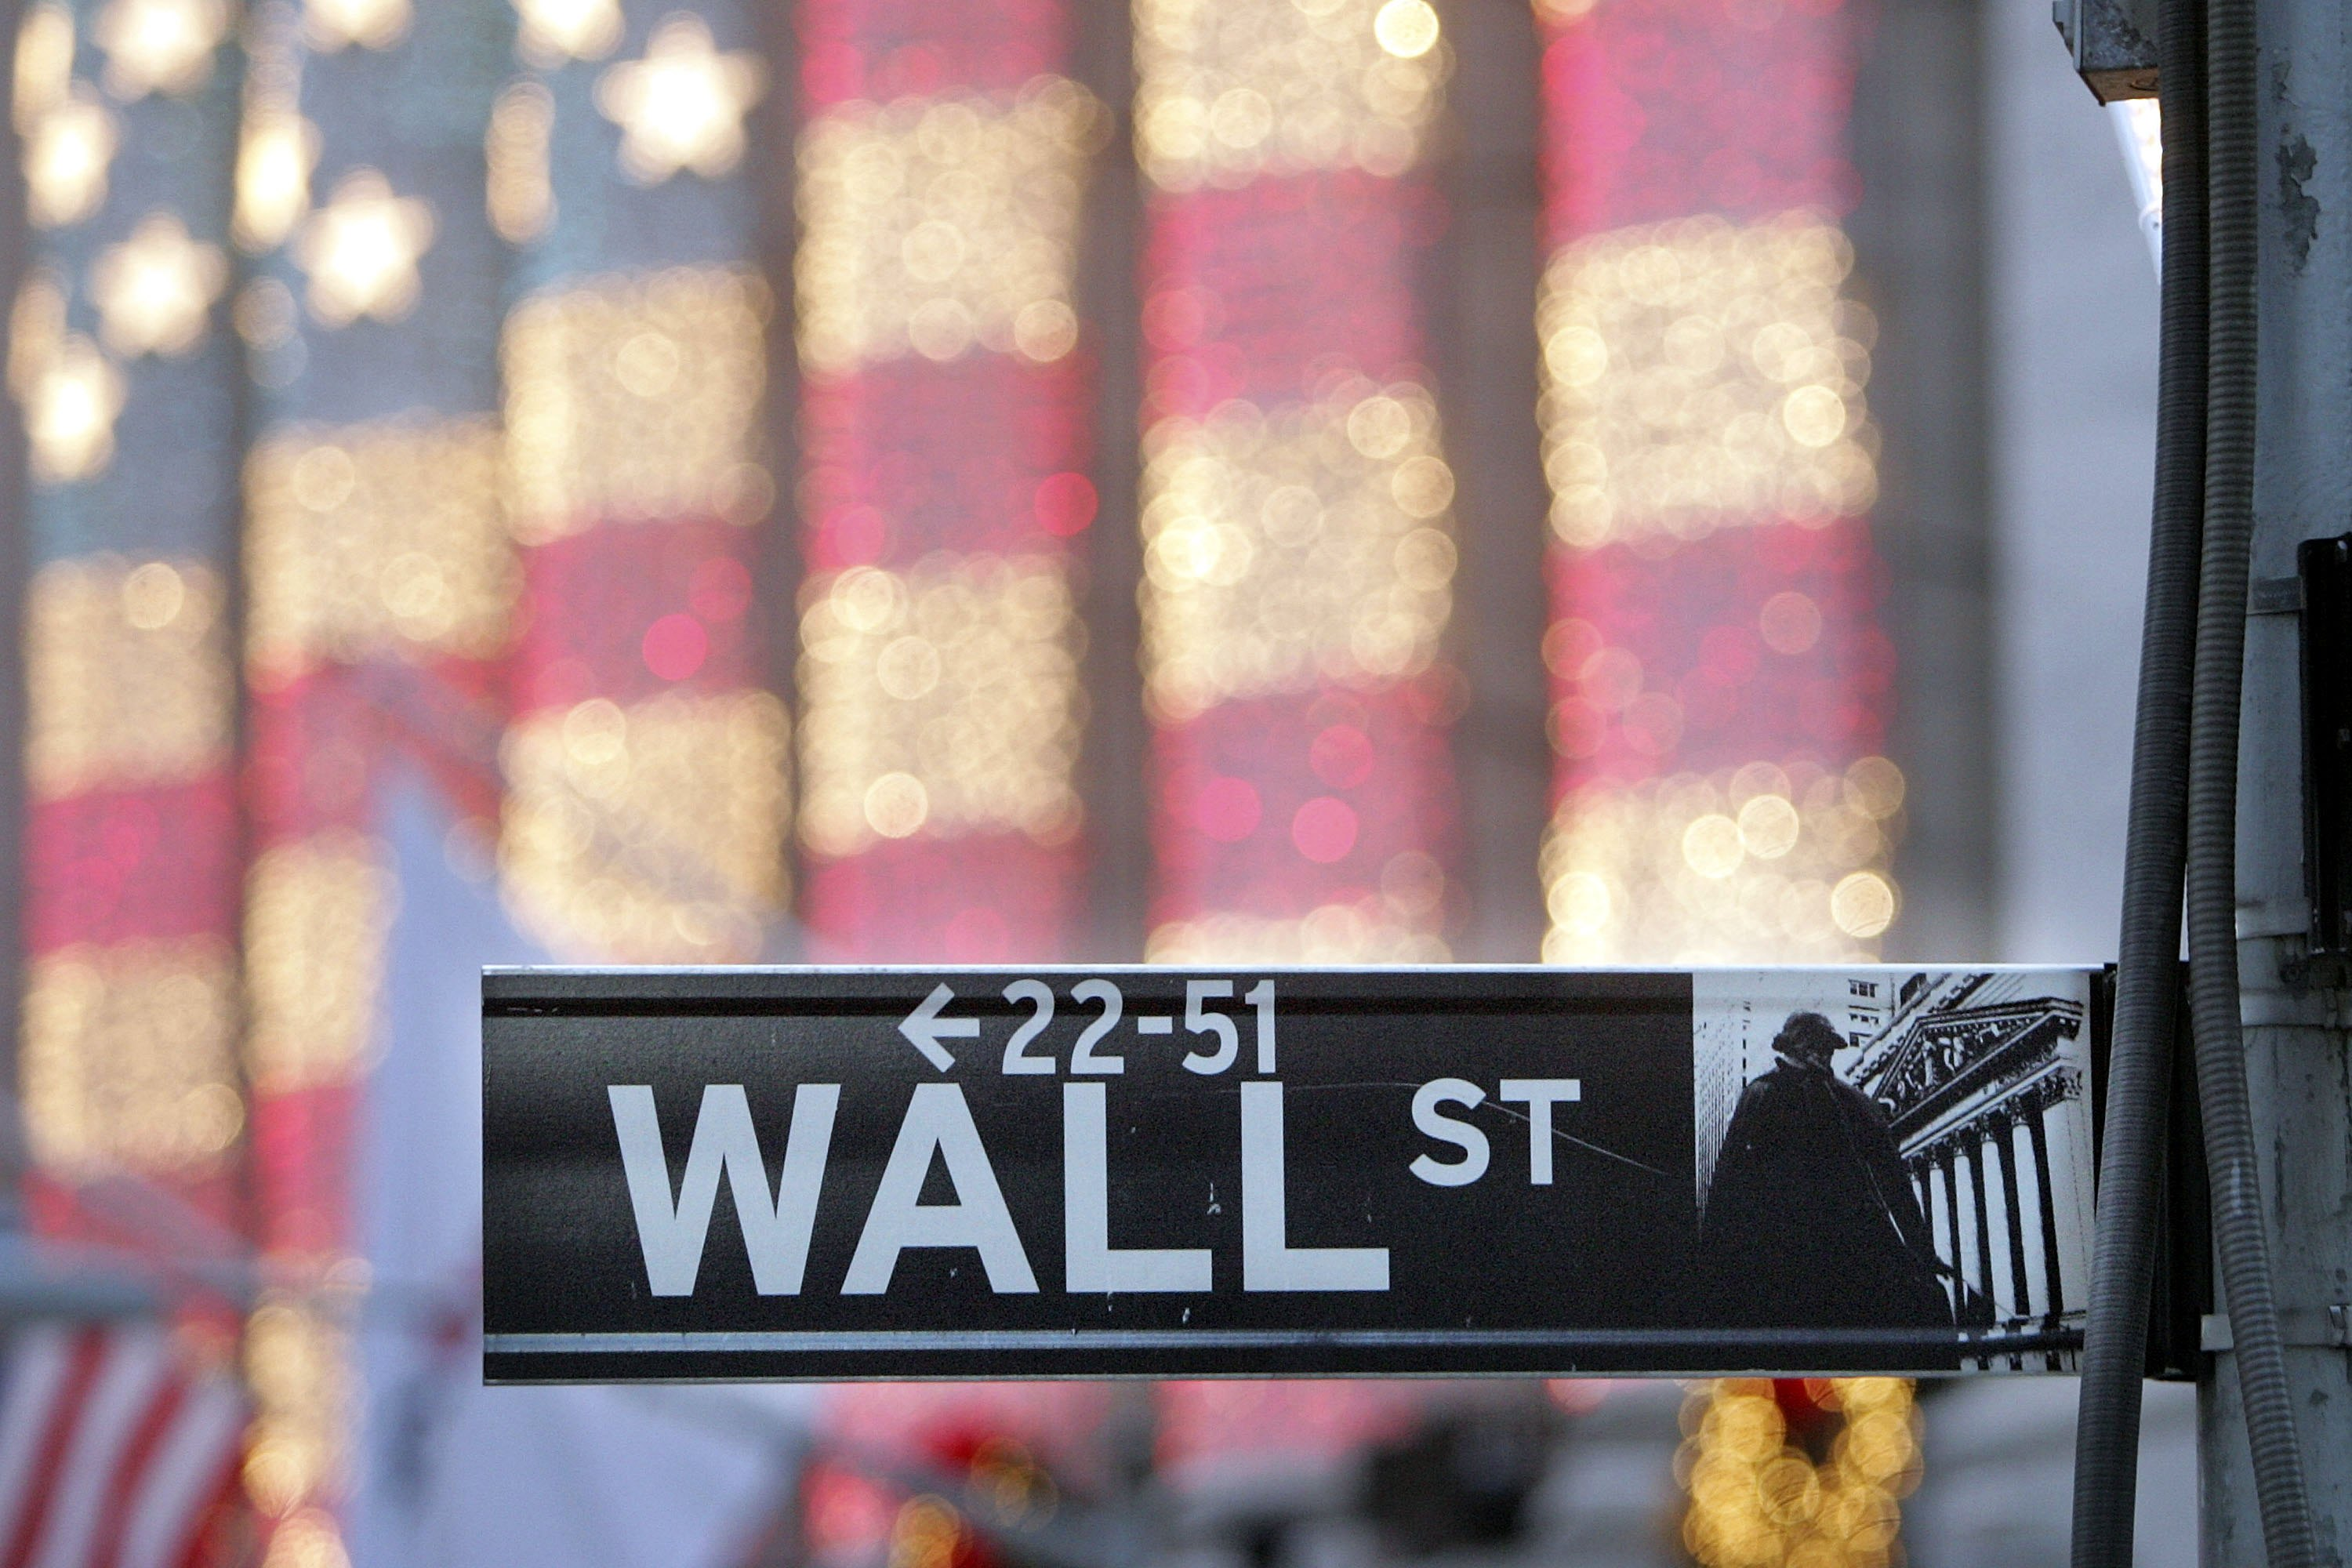 A Wall Street sign is seen in front of the New York Stock Exchange December 21, 2006 in New York City.